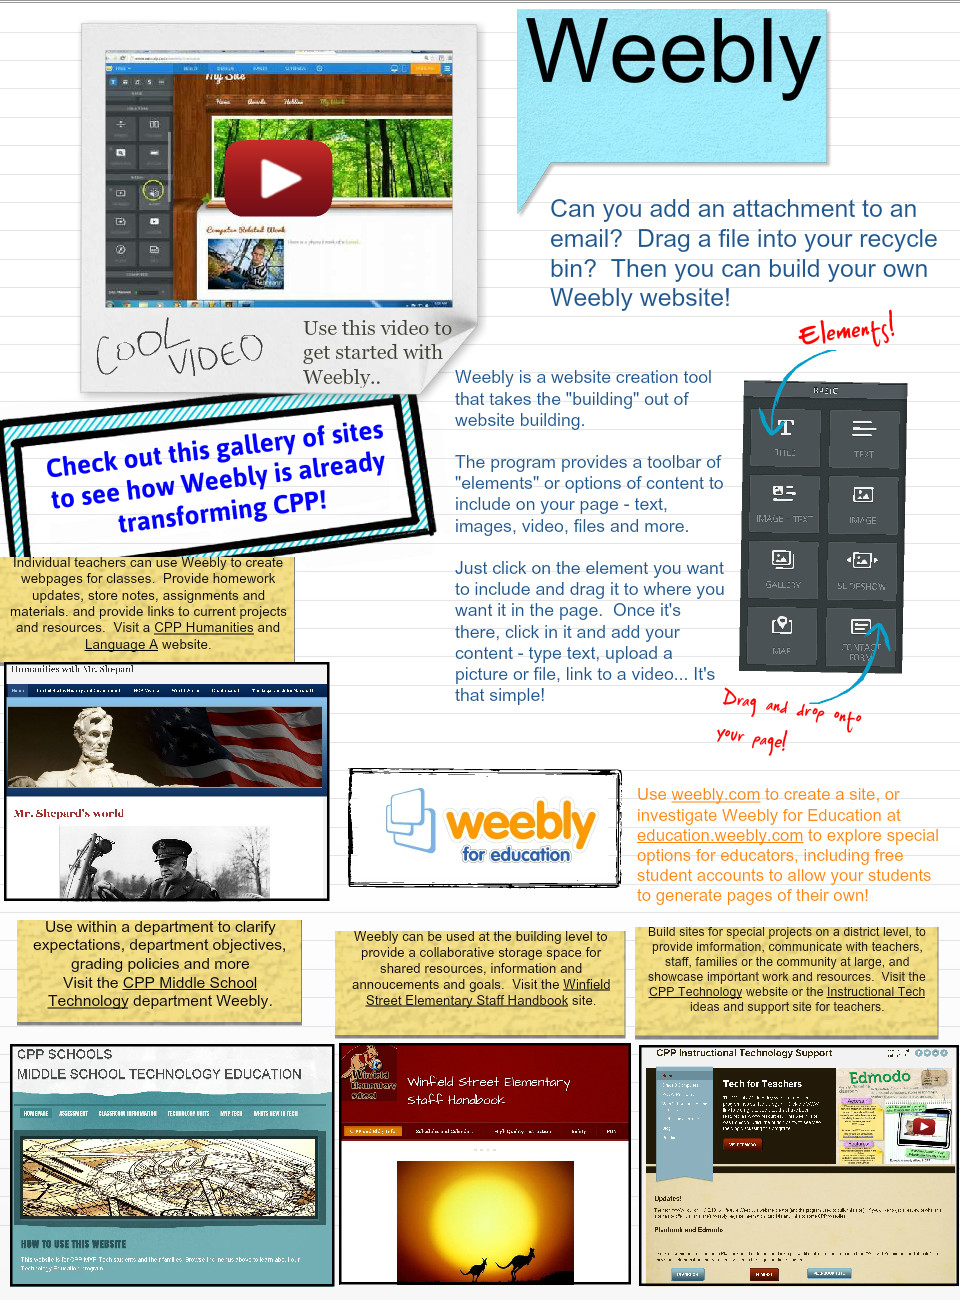 WWW - Weebly